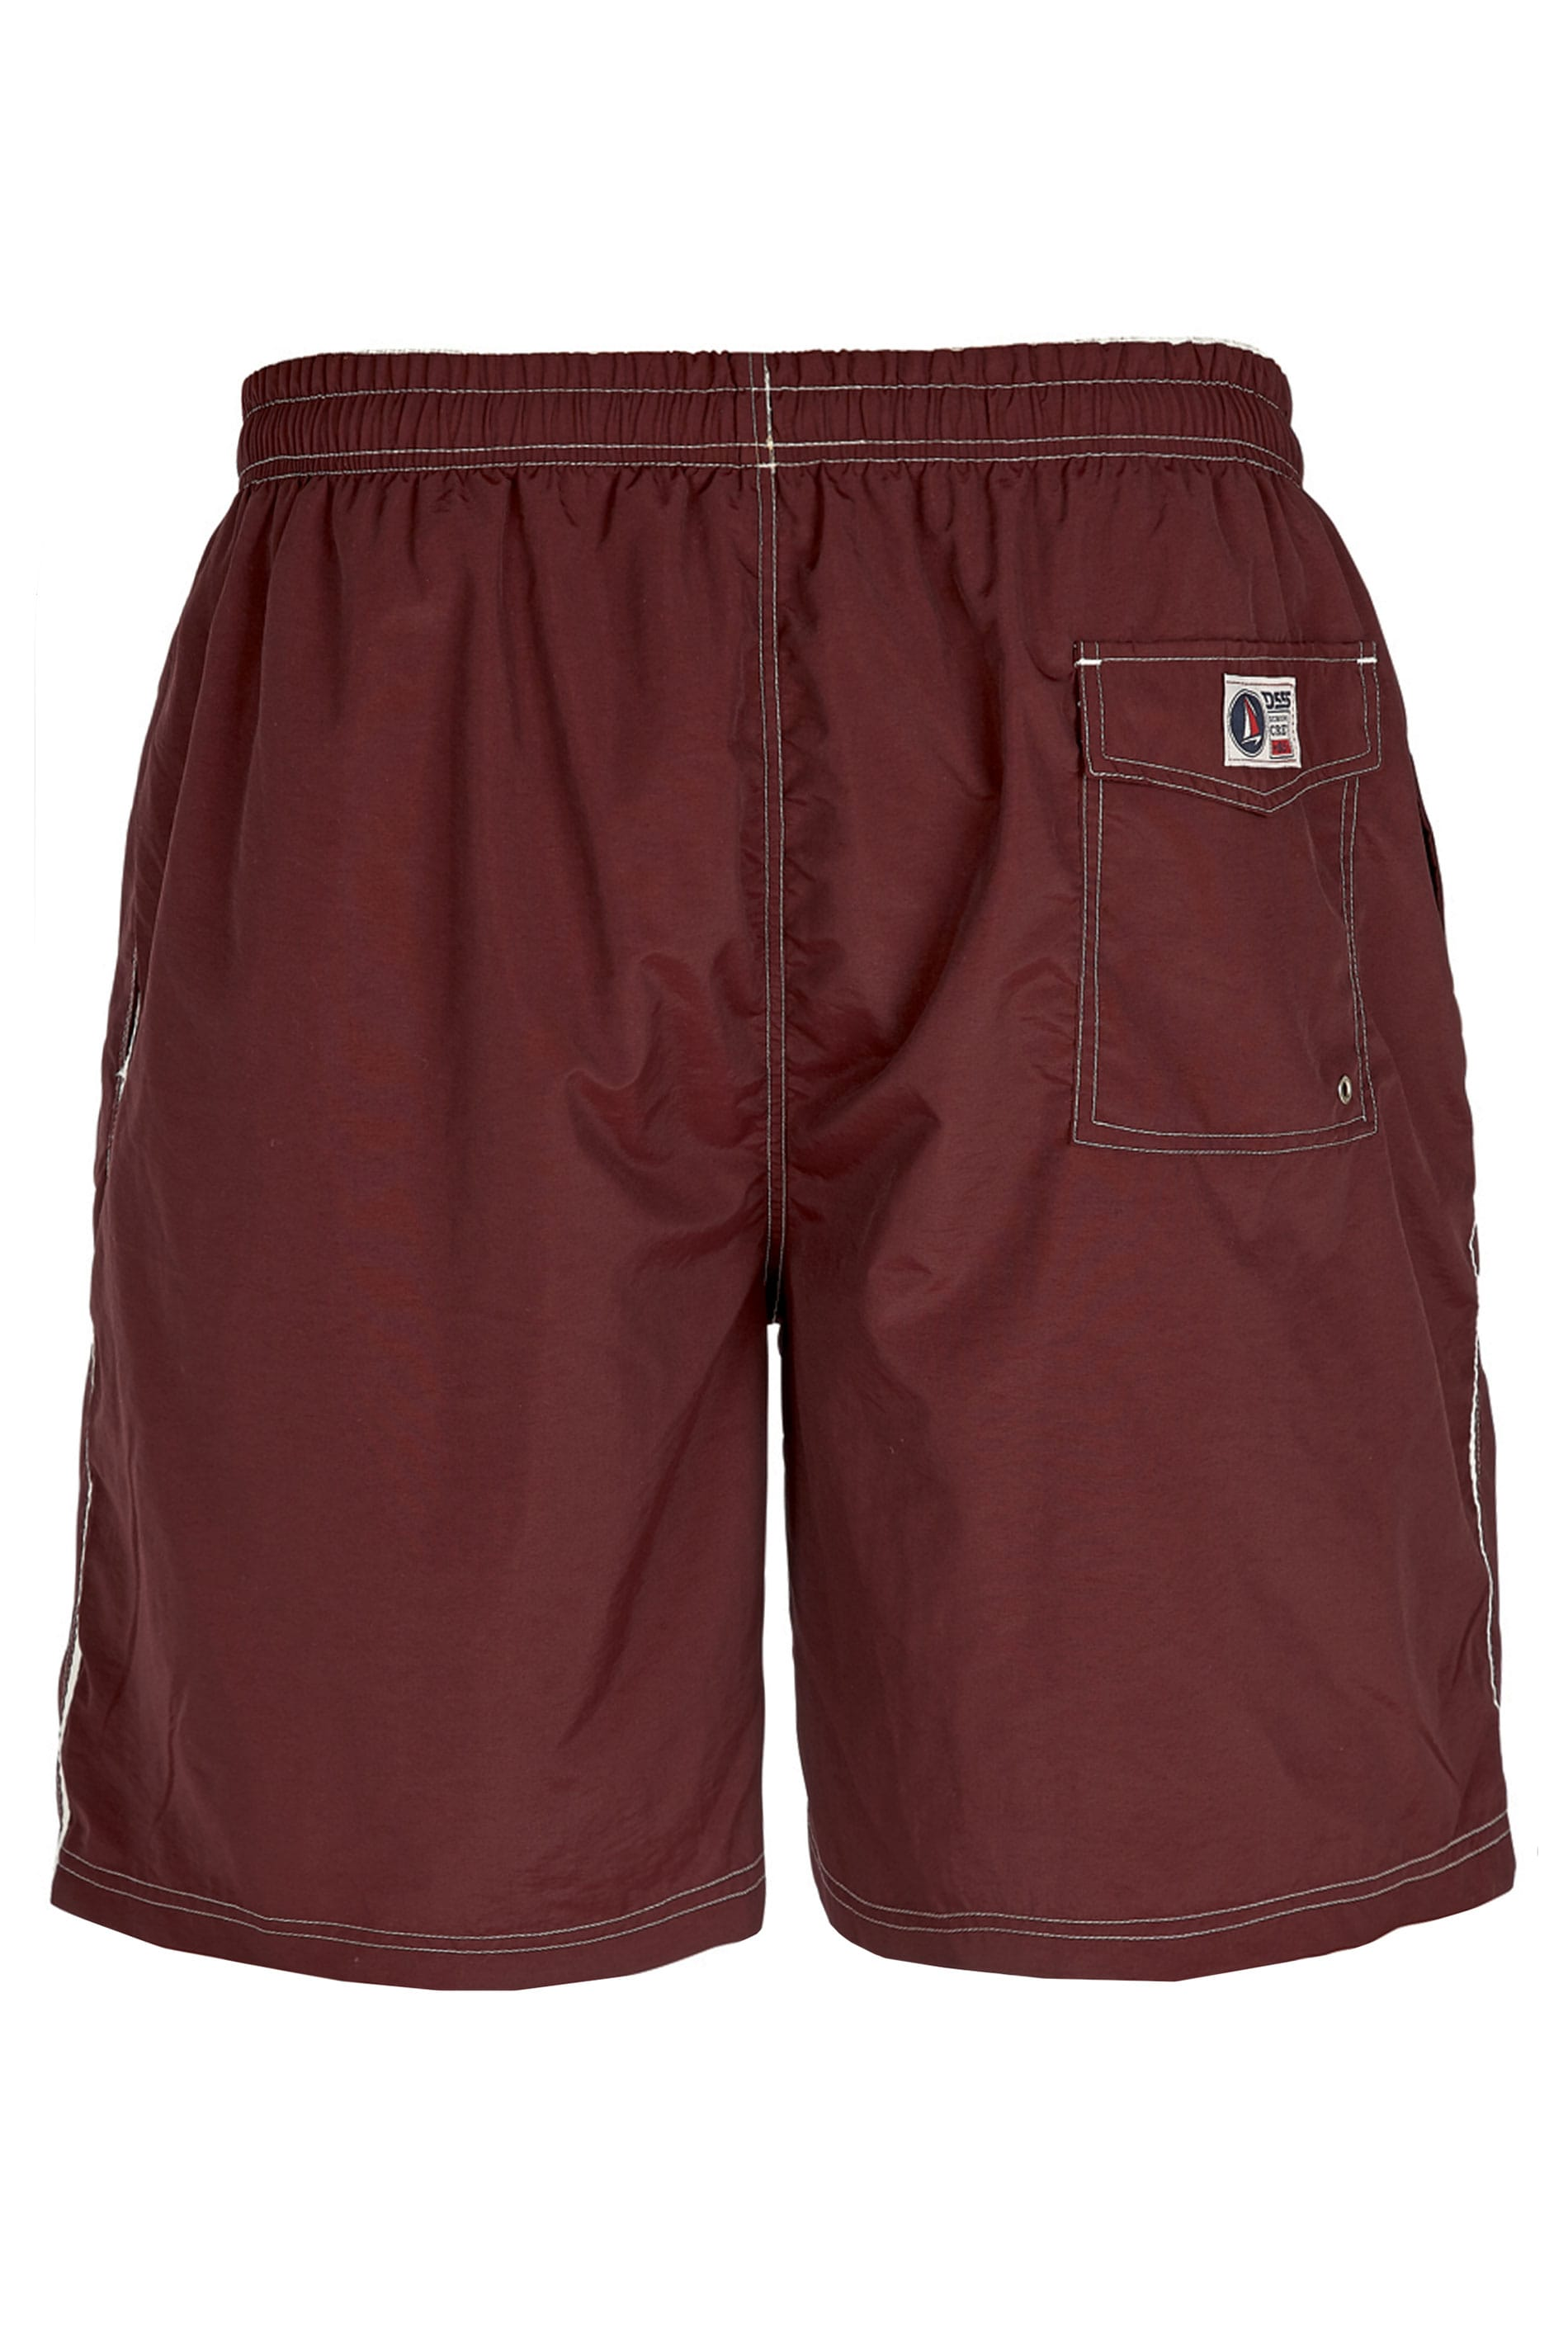 D555 Burgundy Swim Shorts